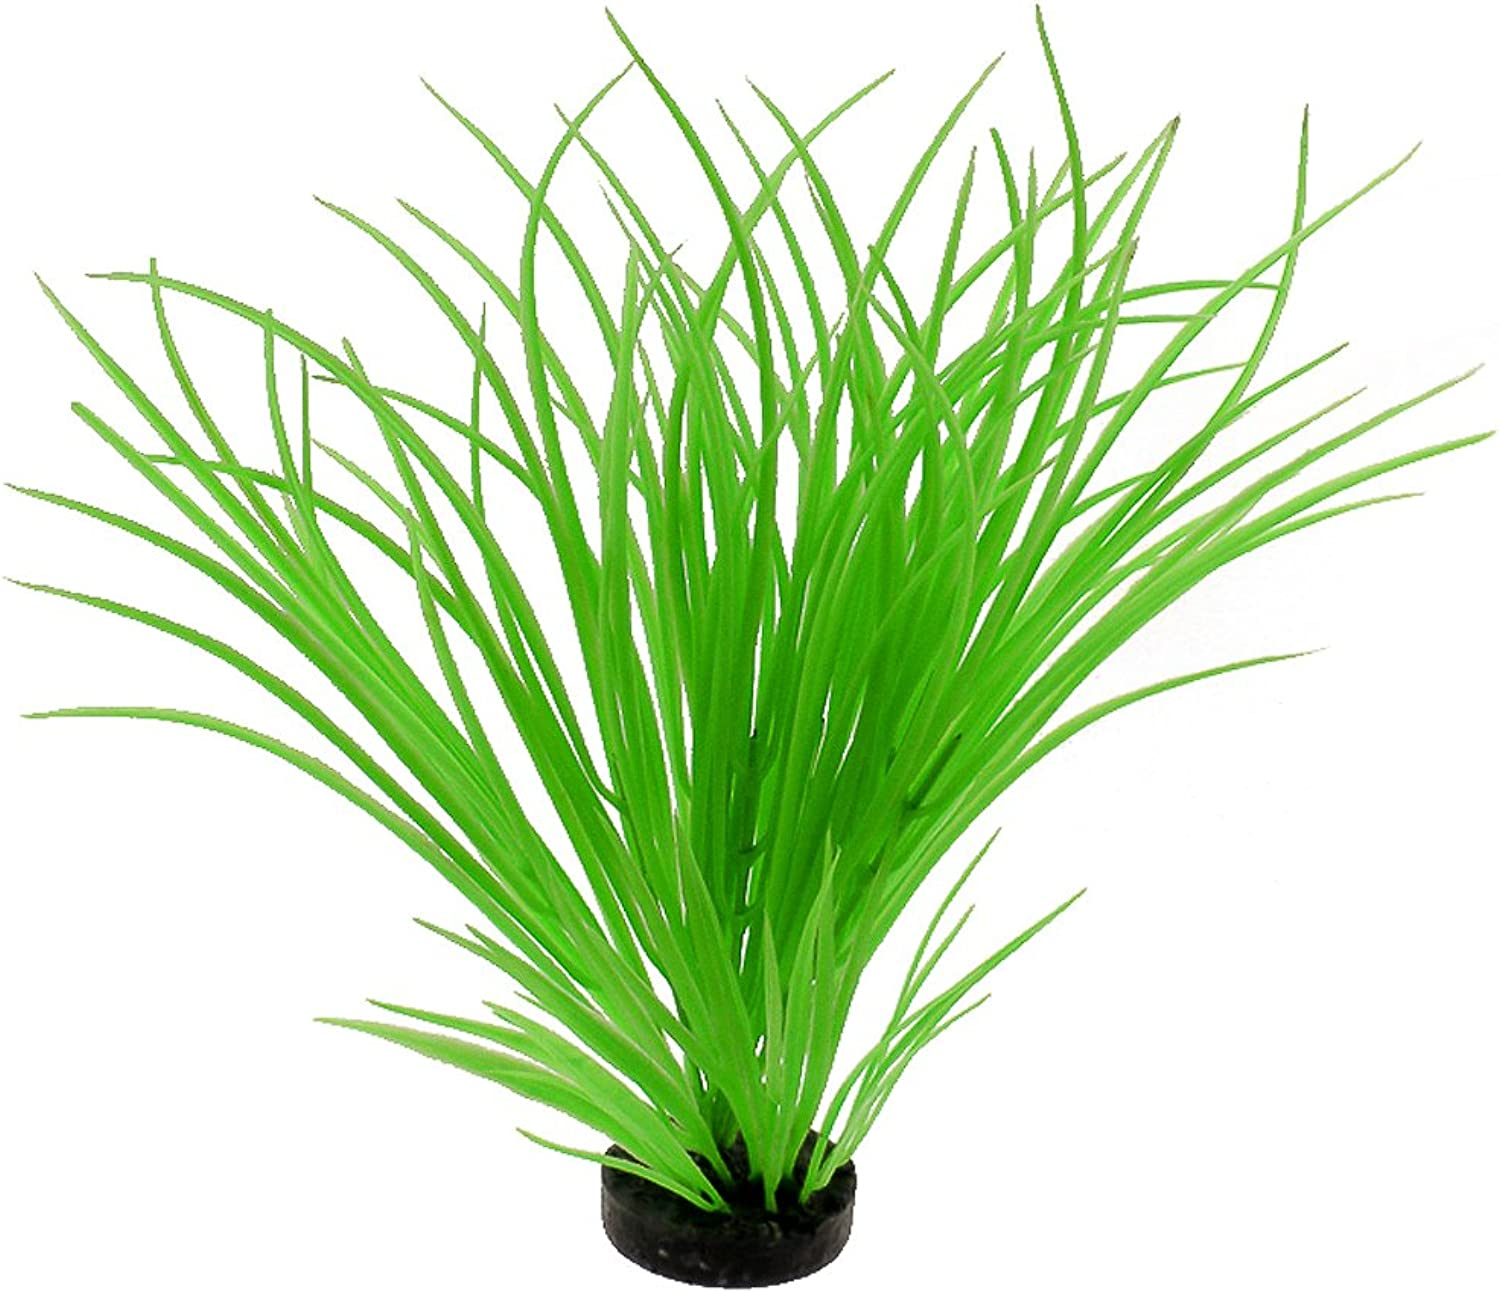 bluee Ribbon Pet Products 30550 Neon Green color Burst Plant Ocean Grass